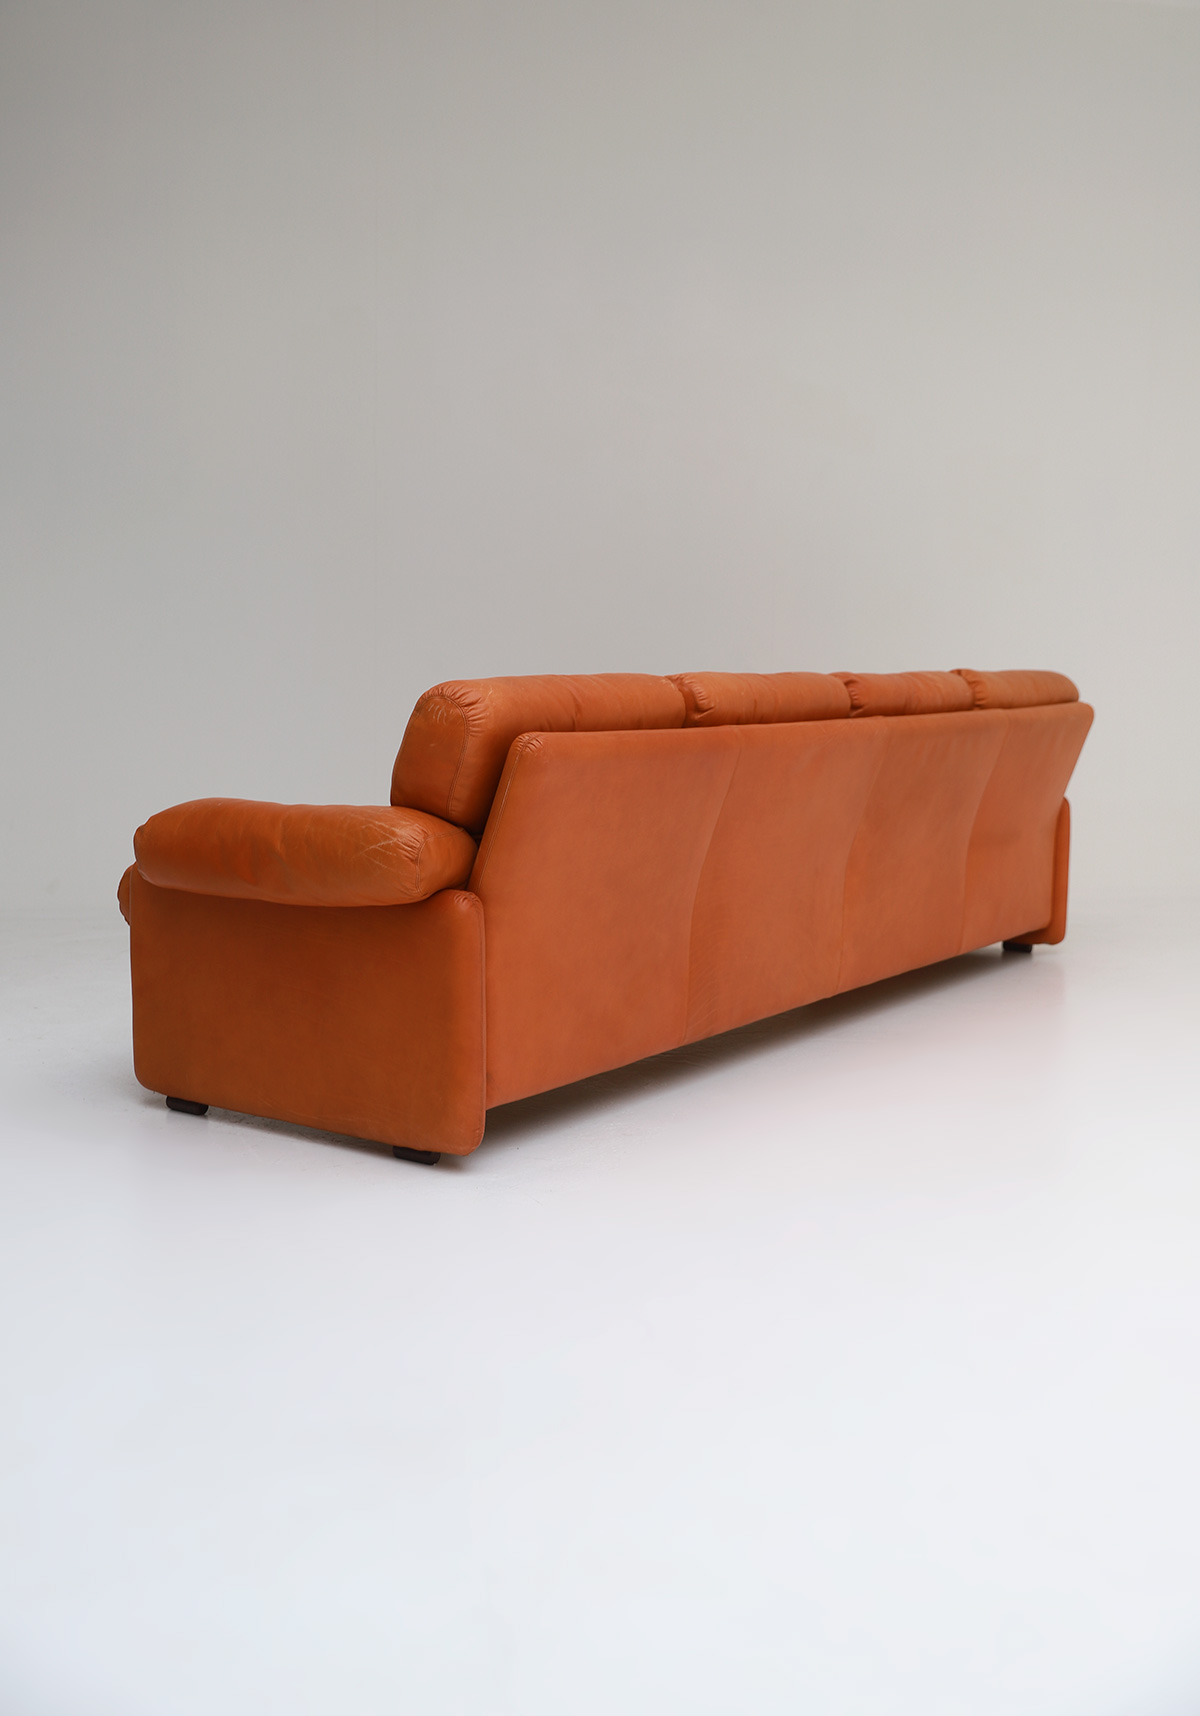 Tobia Scarpa 4 seat Cognac Leather Sofa B&B Italiaimage 6